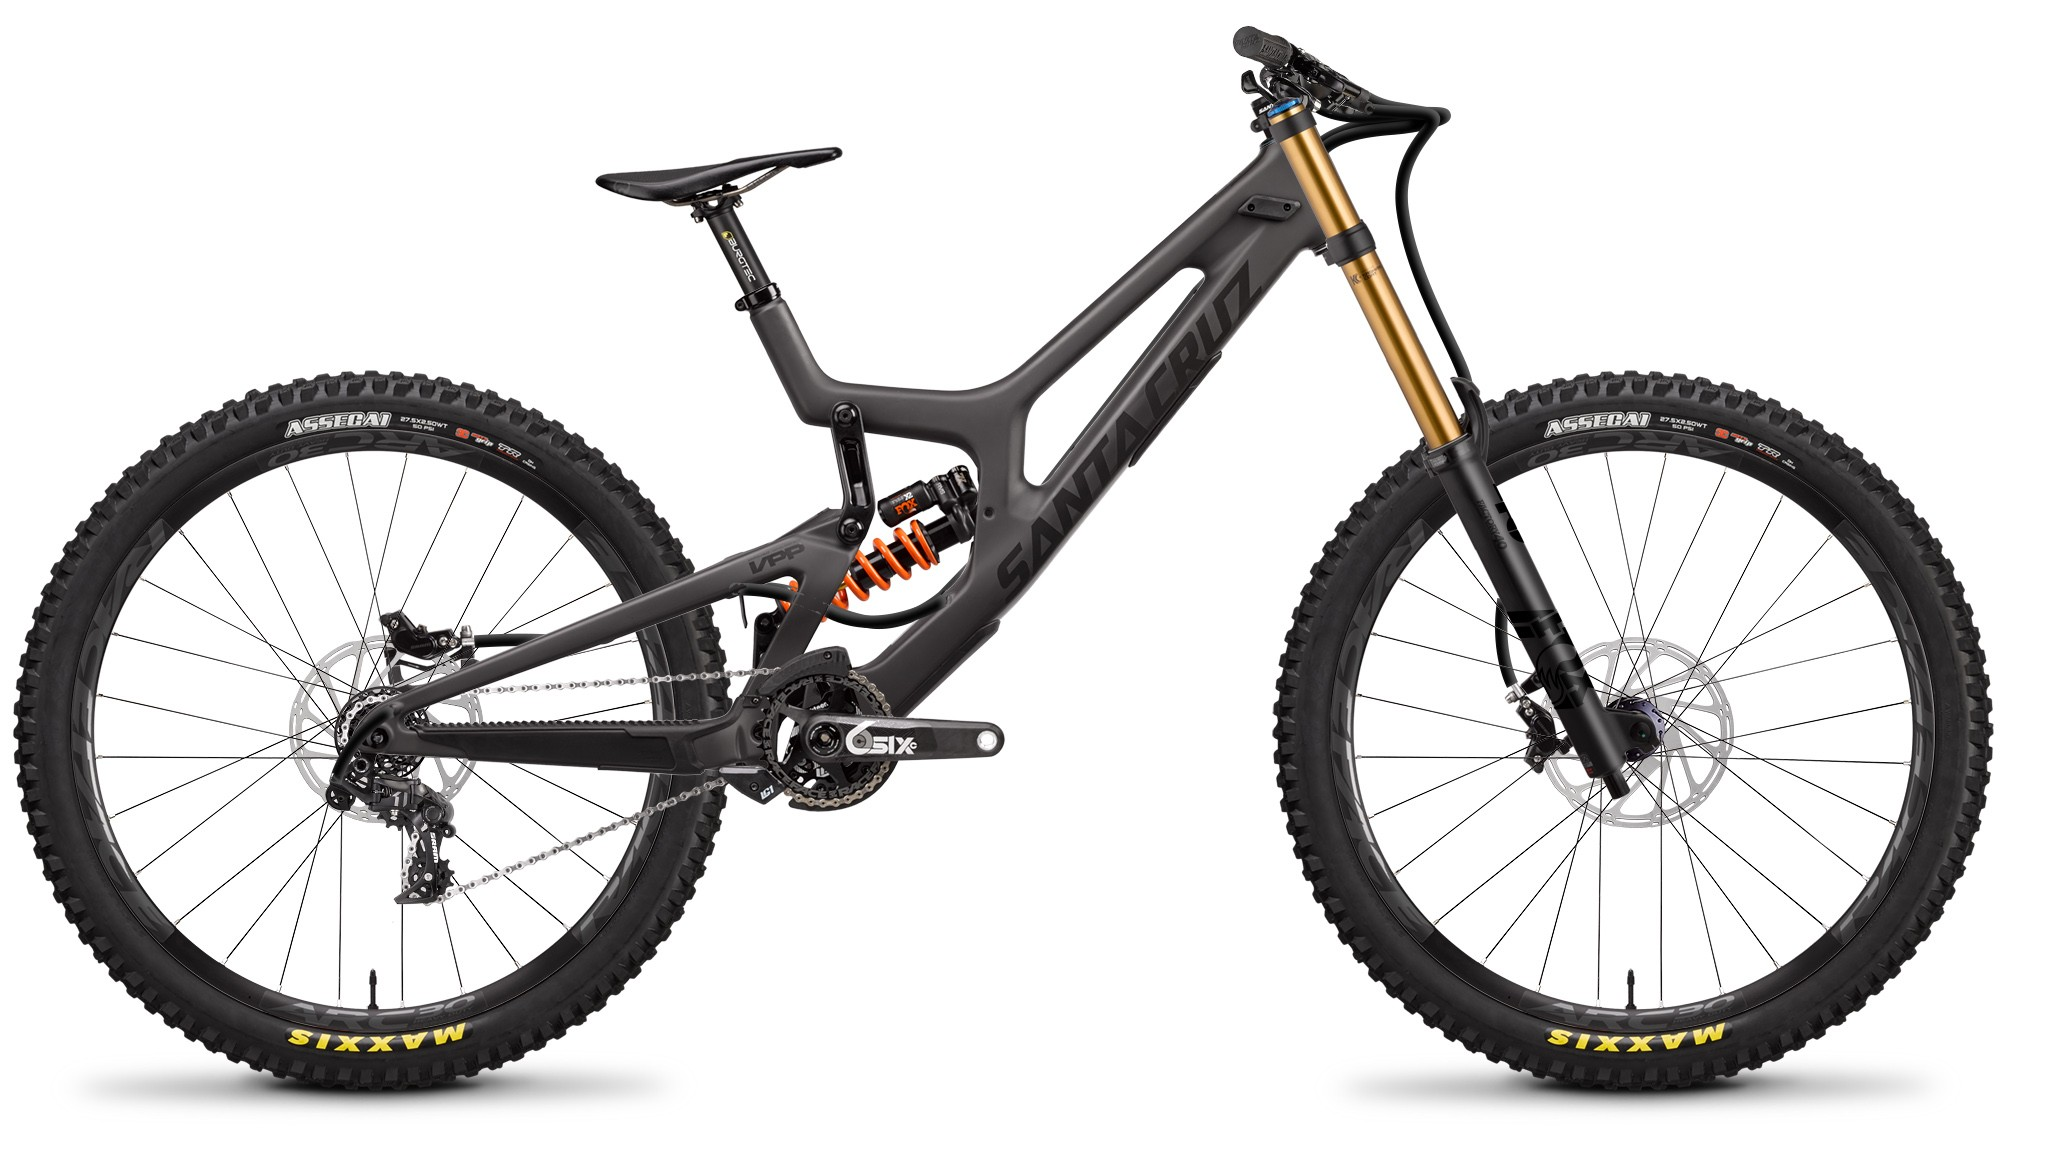 The 650b version shares the same silhouette as the bigger wheeled version